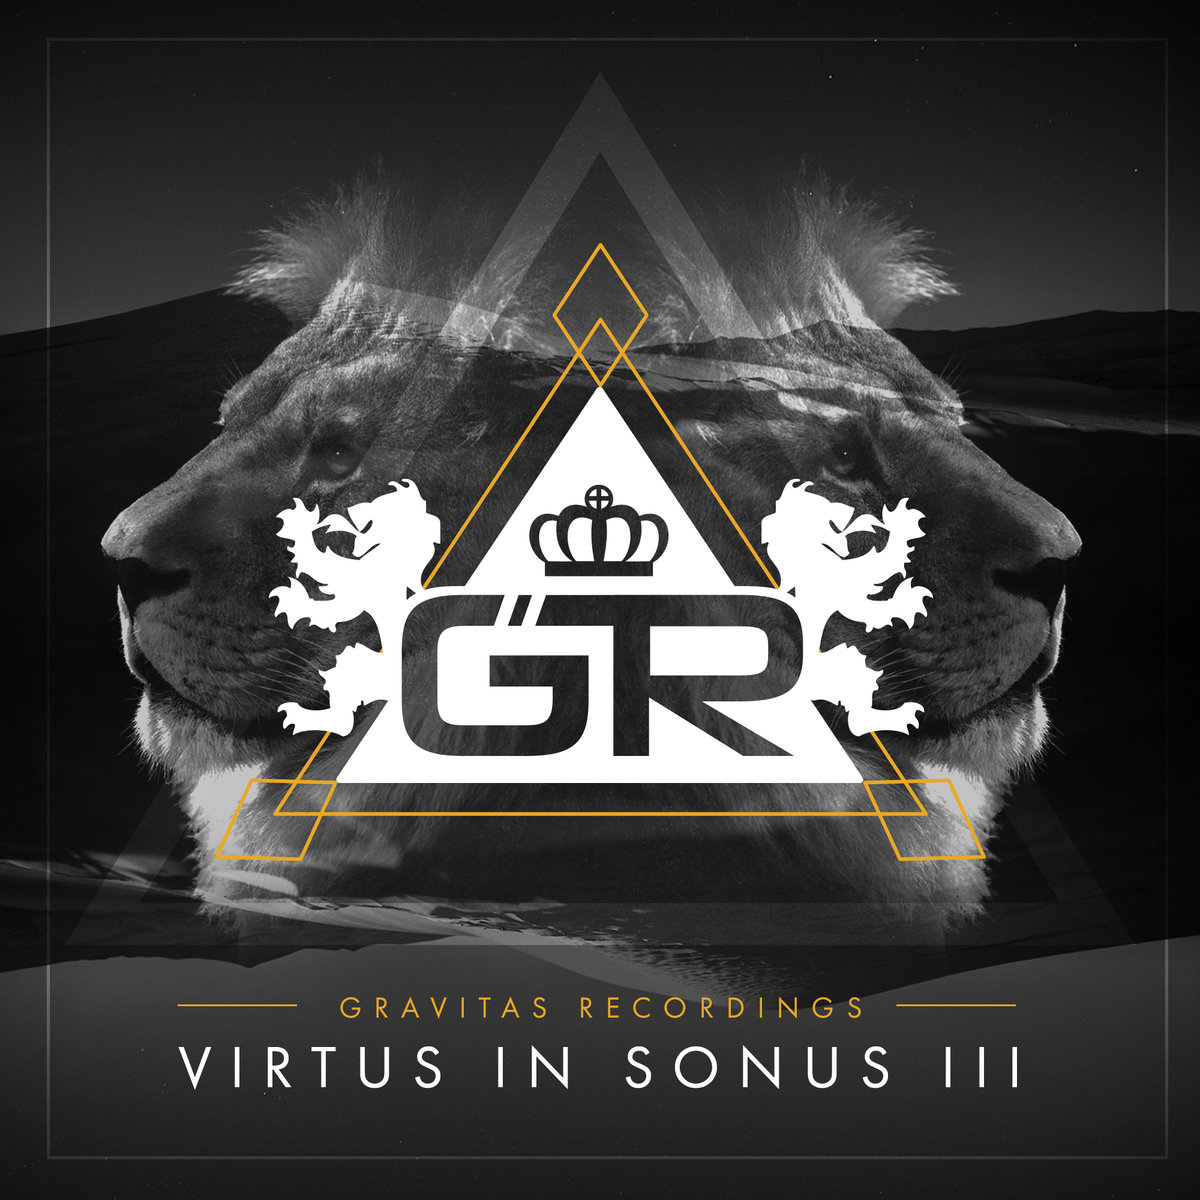 Intellitard - The Velvet Dungeon @ 'Virtus In Sonus III' album (Austin)